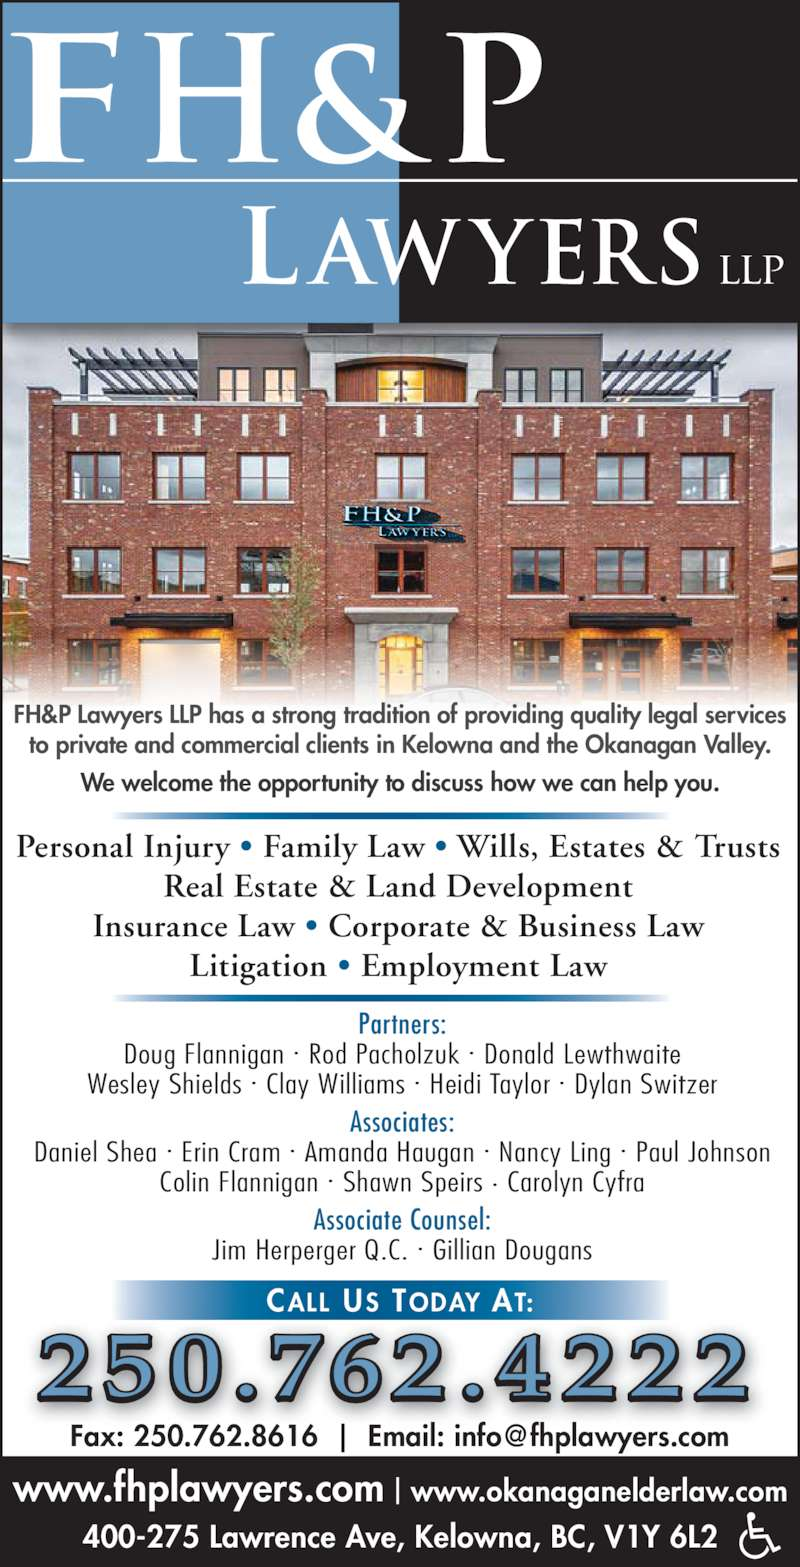 FH&P Lawyers LLP (250-762-4222) - Display Ad - 400-275 Lawrence Ave, Kelowna, BC, V1Y 6L2 FH&P Lawyers LLP has a strong tradition of providing quality legal services to private and commercial clients in Kelowna and the Okanagan Valley. We welcome the opportunity to discuss how we can help you. Personal Injury ? Family Law ? Wills, Estates & Trusts Real Estate & Land Development Insurance Law ? Corporate & Business Law Litigation ? Employment Law 2 50 .762 .4 2 2 2 Partners: Doug Flannigan ? Rod Pacholzuk ? Donald Lewthwaite Wesley Shields ? Clay Williams ? Heidi Taylor ? Dylan Switzer Associates: www.fhplawyers.com | www.okanaganelderlaw.com Daniel Shea ? Erin Cram ? Amanda Haugan ? Nancy Ling ? Paul Johnson Colin Flannigan ? Shawn Speirs ? Carolyn Cyfra Associate Counsel: Jim Herperger Q.C. ? Gillian Dougans CALL US TODAY AT: